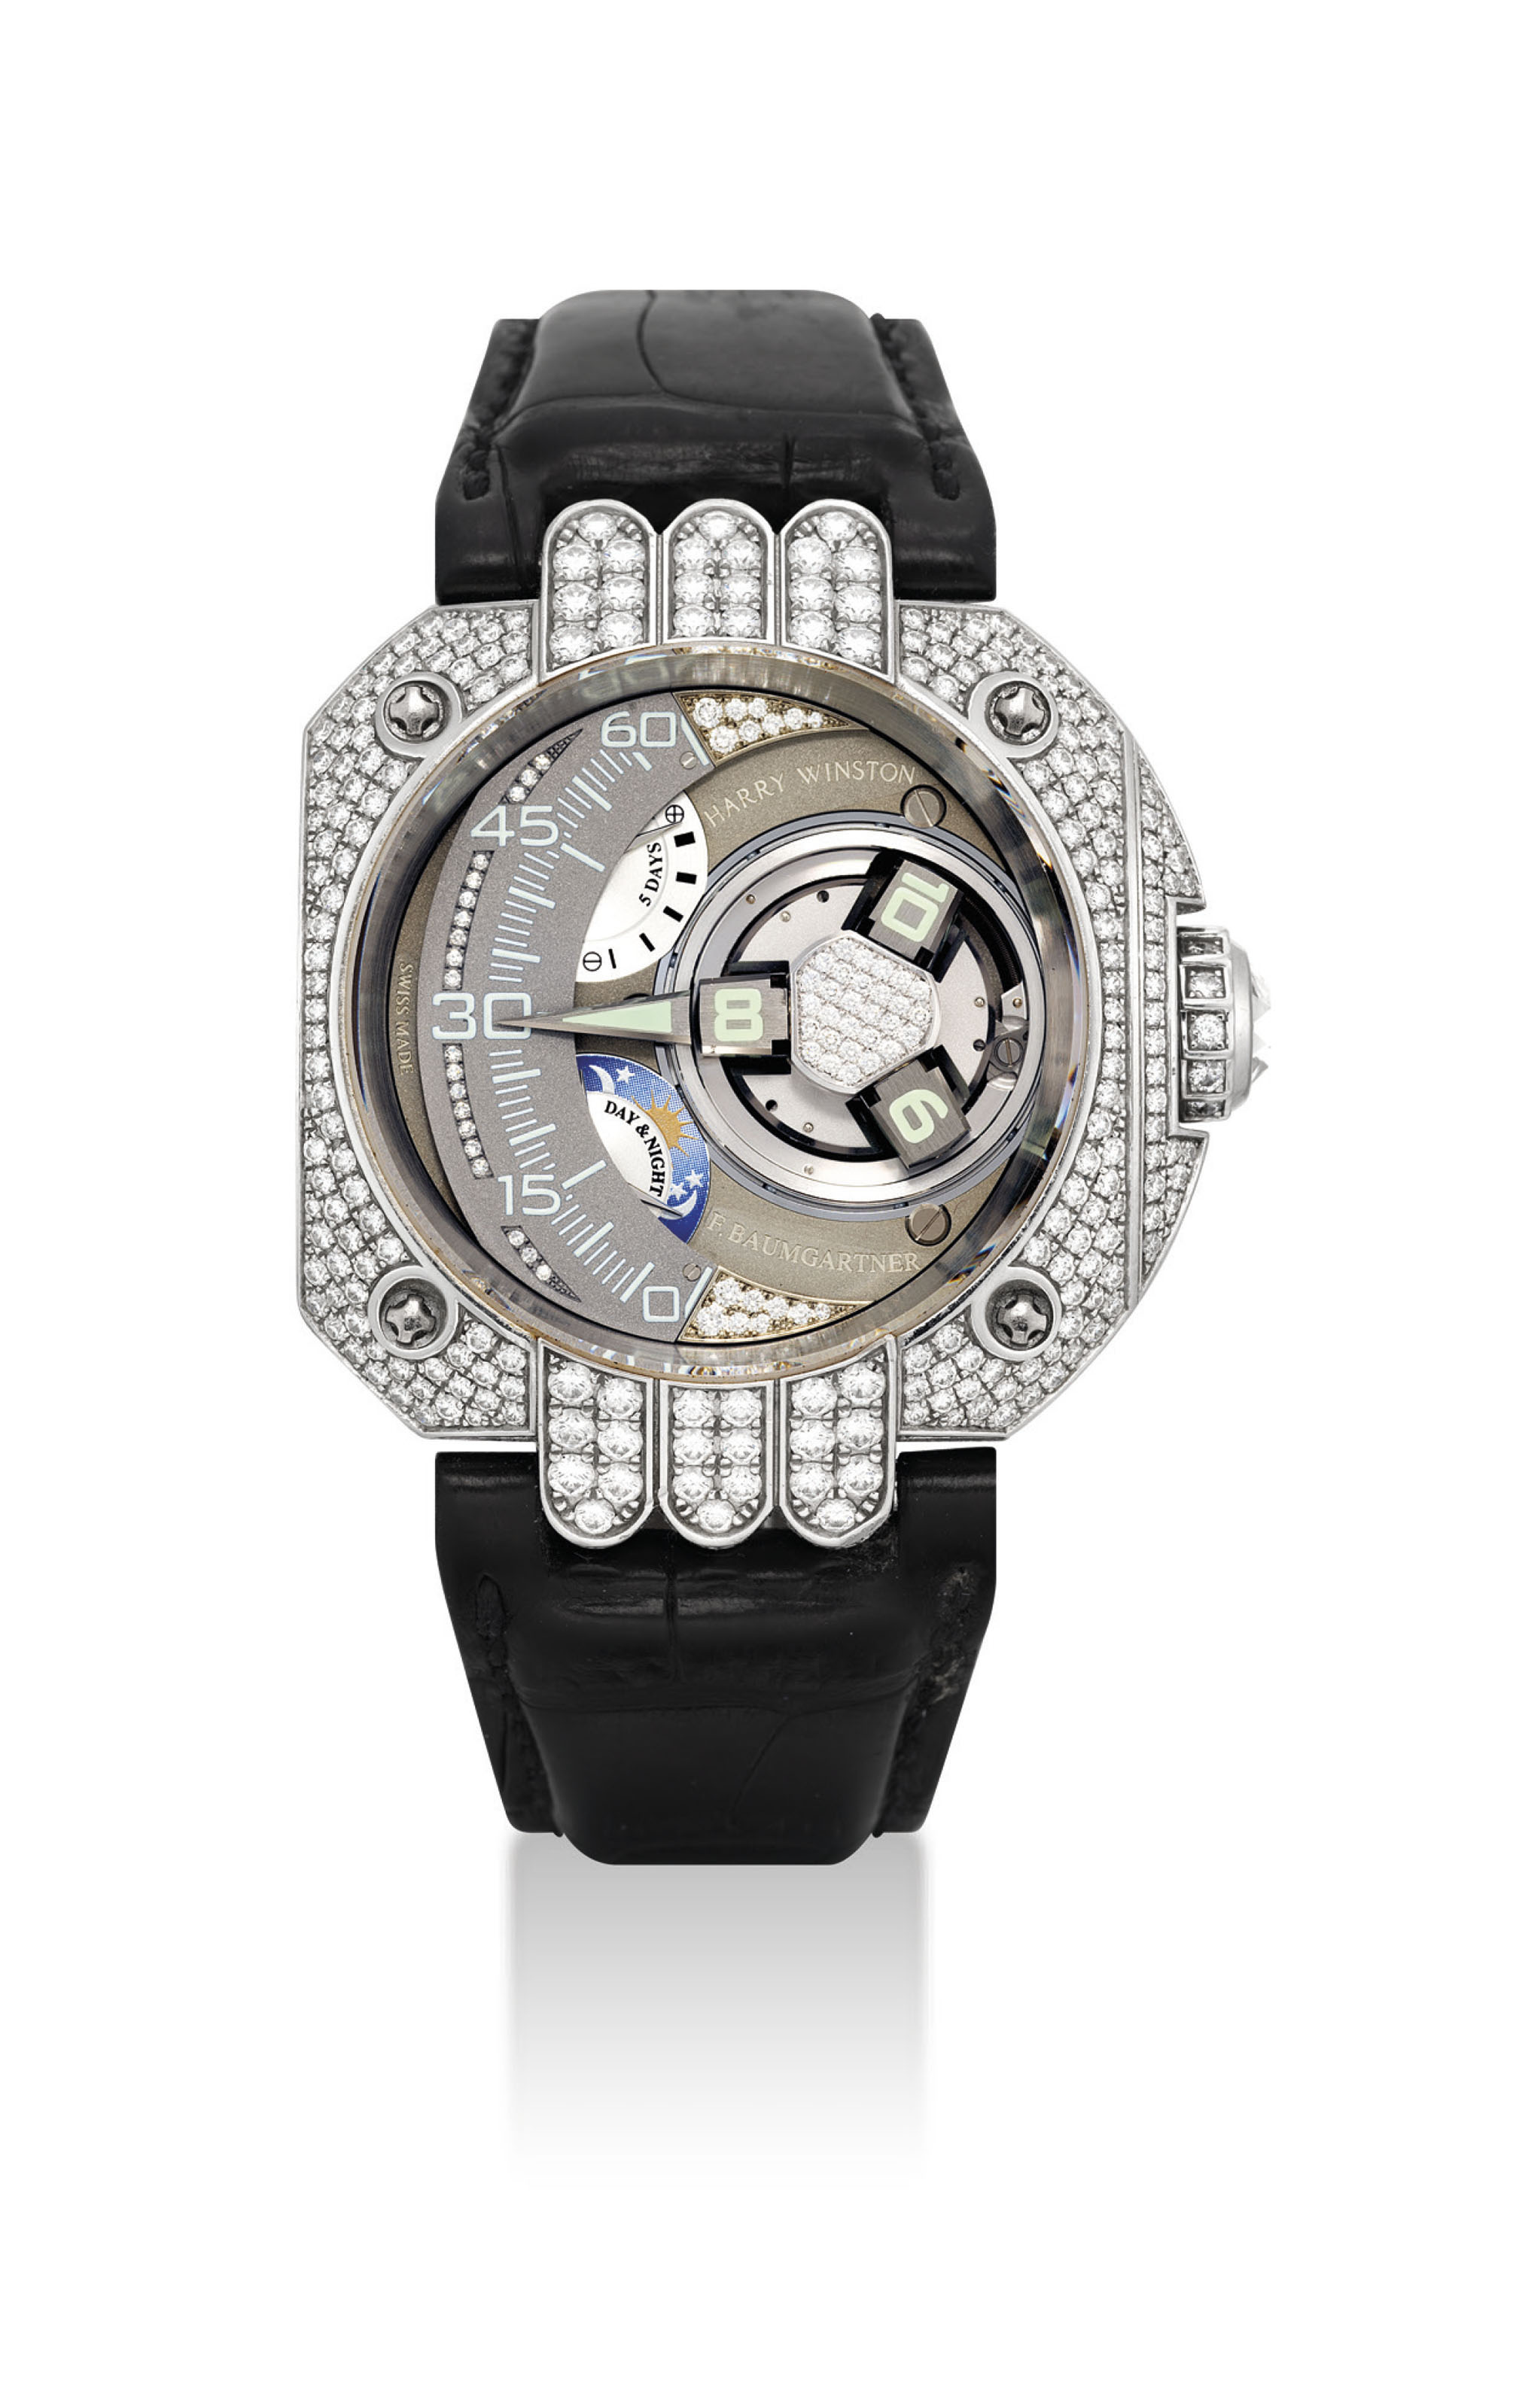 HARRY WINSTON & FELIX BAUMGARTNER. AN UNUSUAL, LARGE AND EXTREMELY RARE PLATINUM AND DIAMOND-SET LIMITED EDITION WRISTWATCH WITH 3-DIMENSIONAL SATELLITE HOUR DISPLAY, RETROGRADE MINUTES, 5 DAY POWER RESERVE, DAY AND NIGHT AND 5 YEARS SERVICE INDICATION